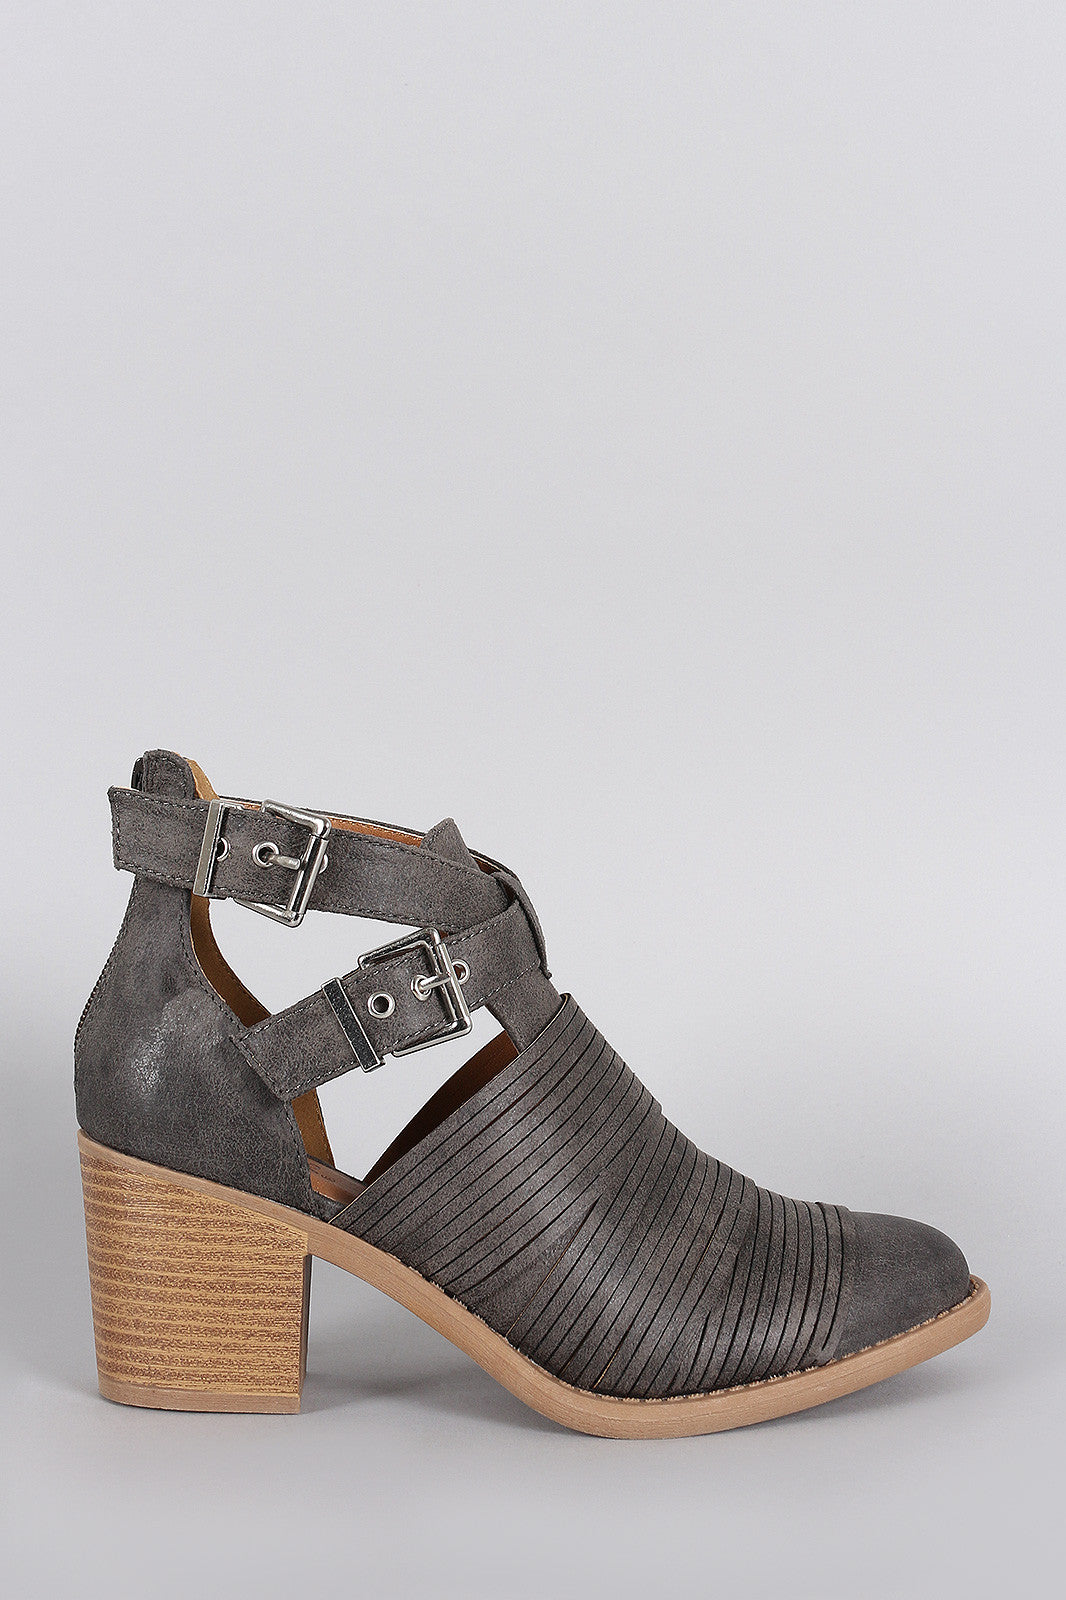 Qupid Slashed Crisscross Buckled Strap Chunky Heeled Ankle Boots - Thick 'N' Curvy Shop - 1